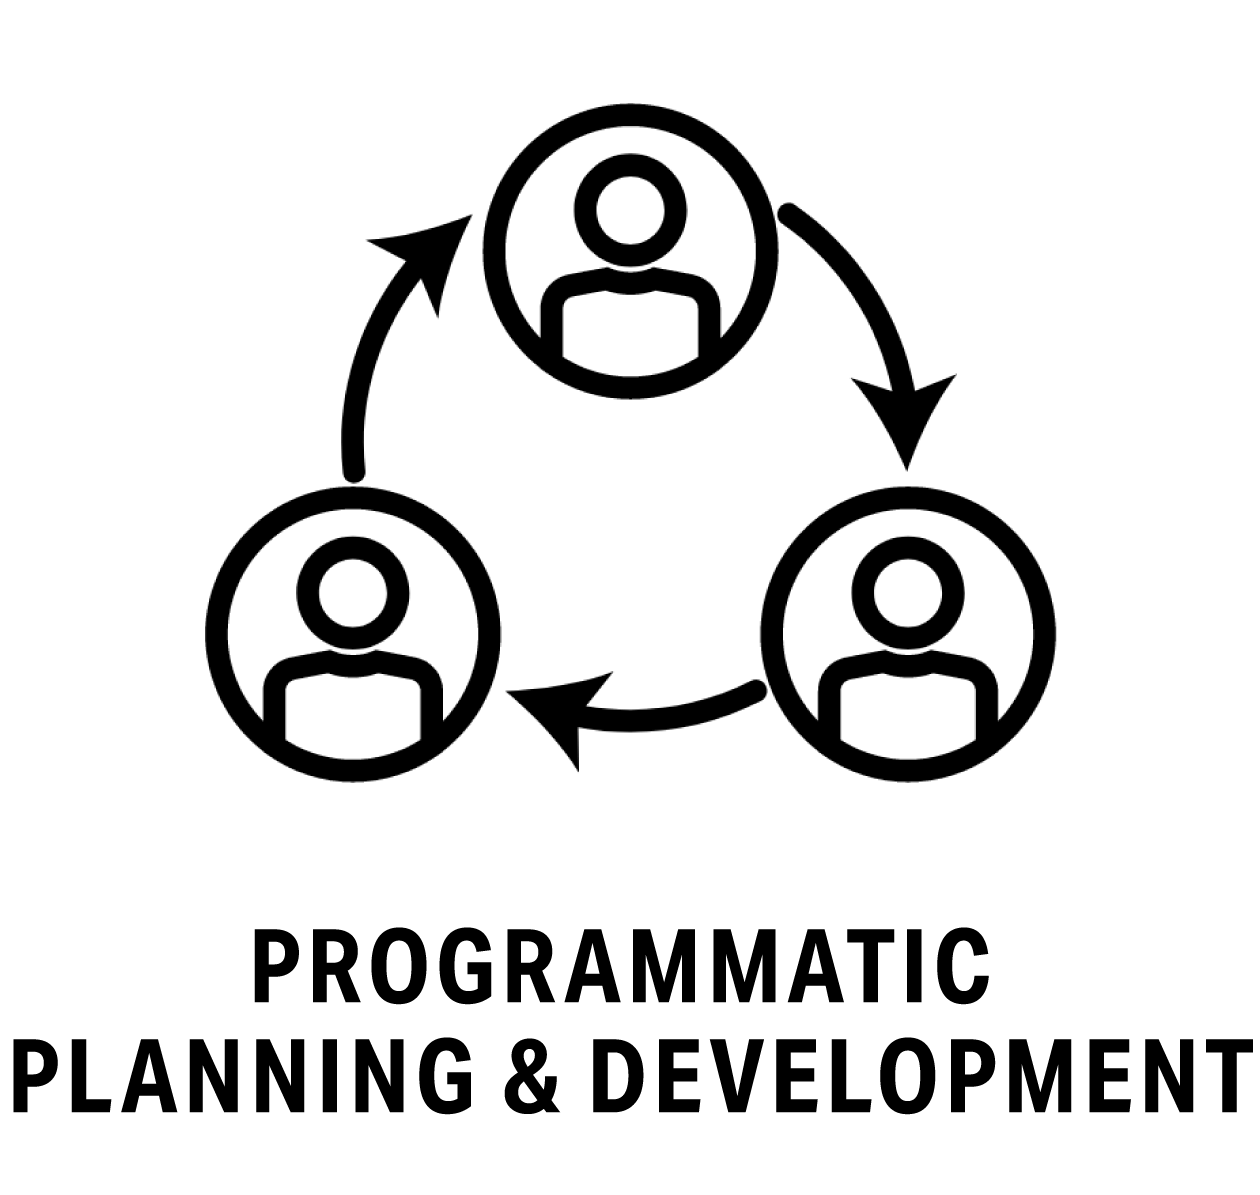 Programmatic Planning & Development